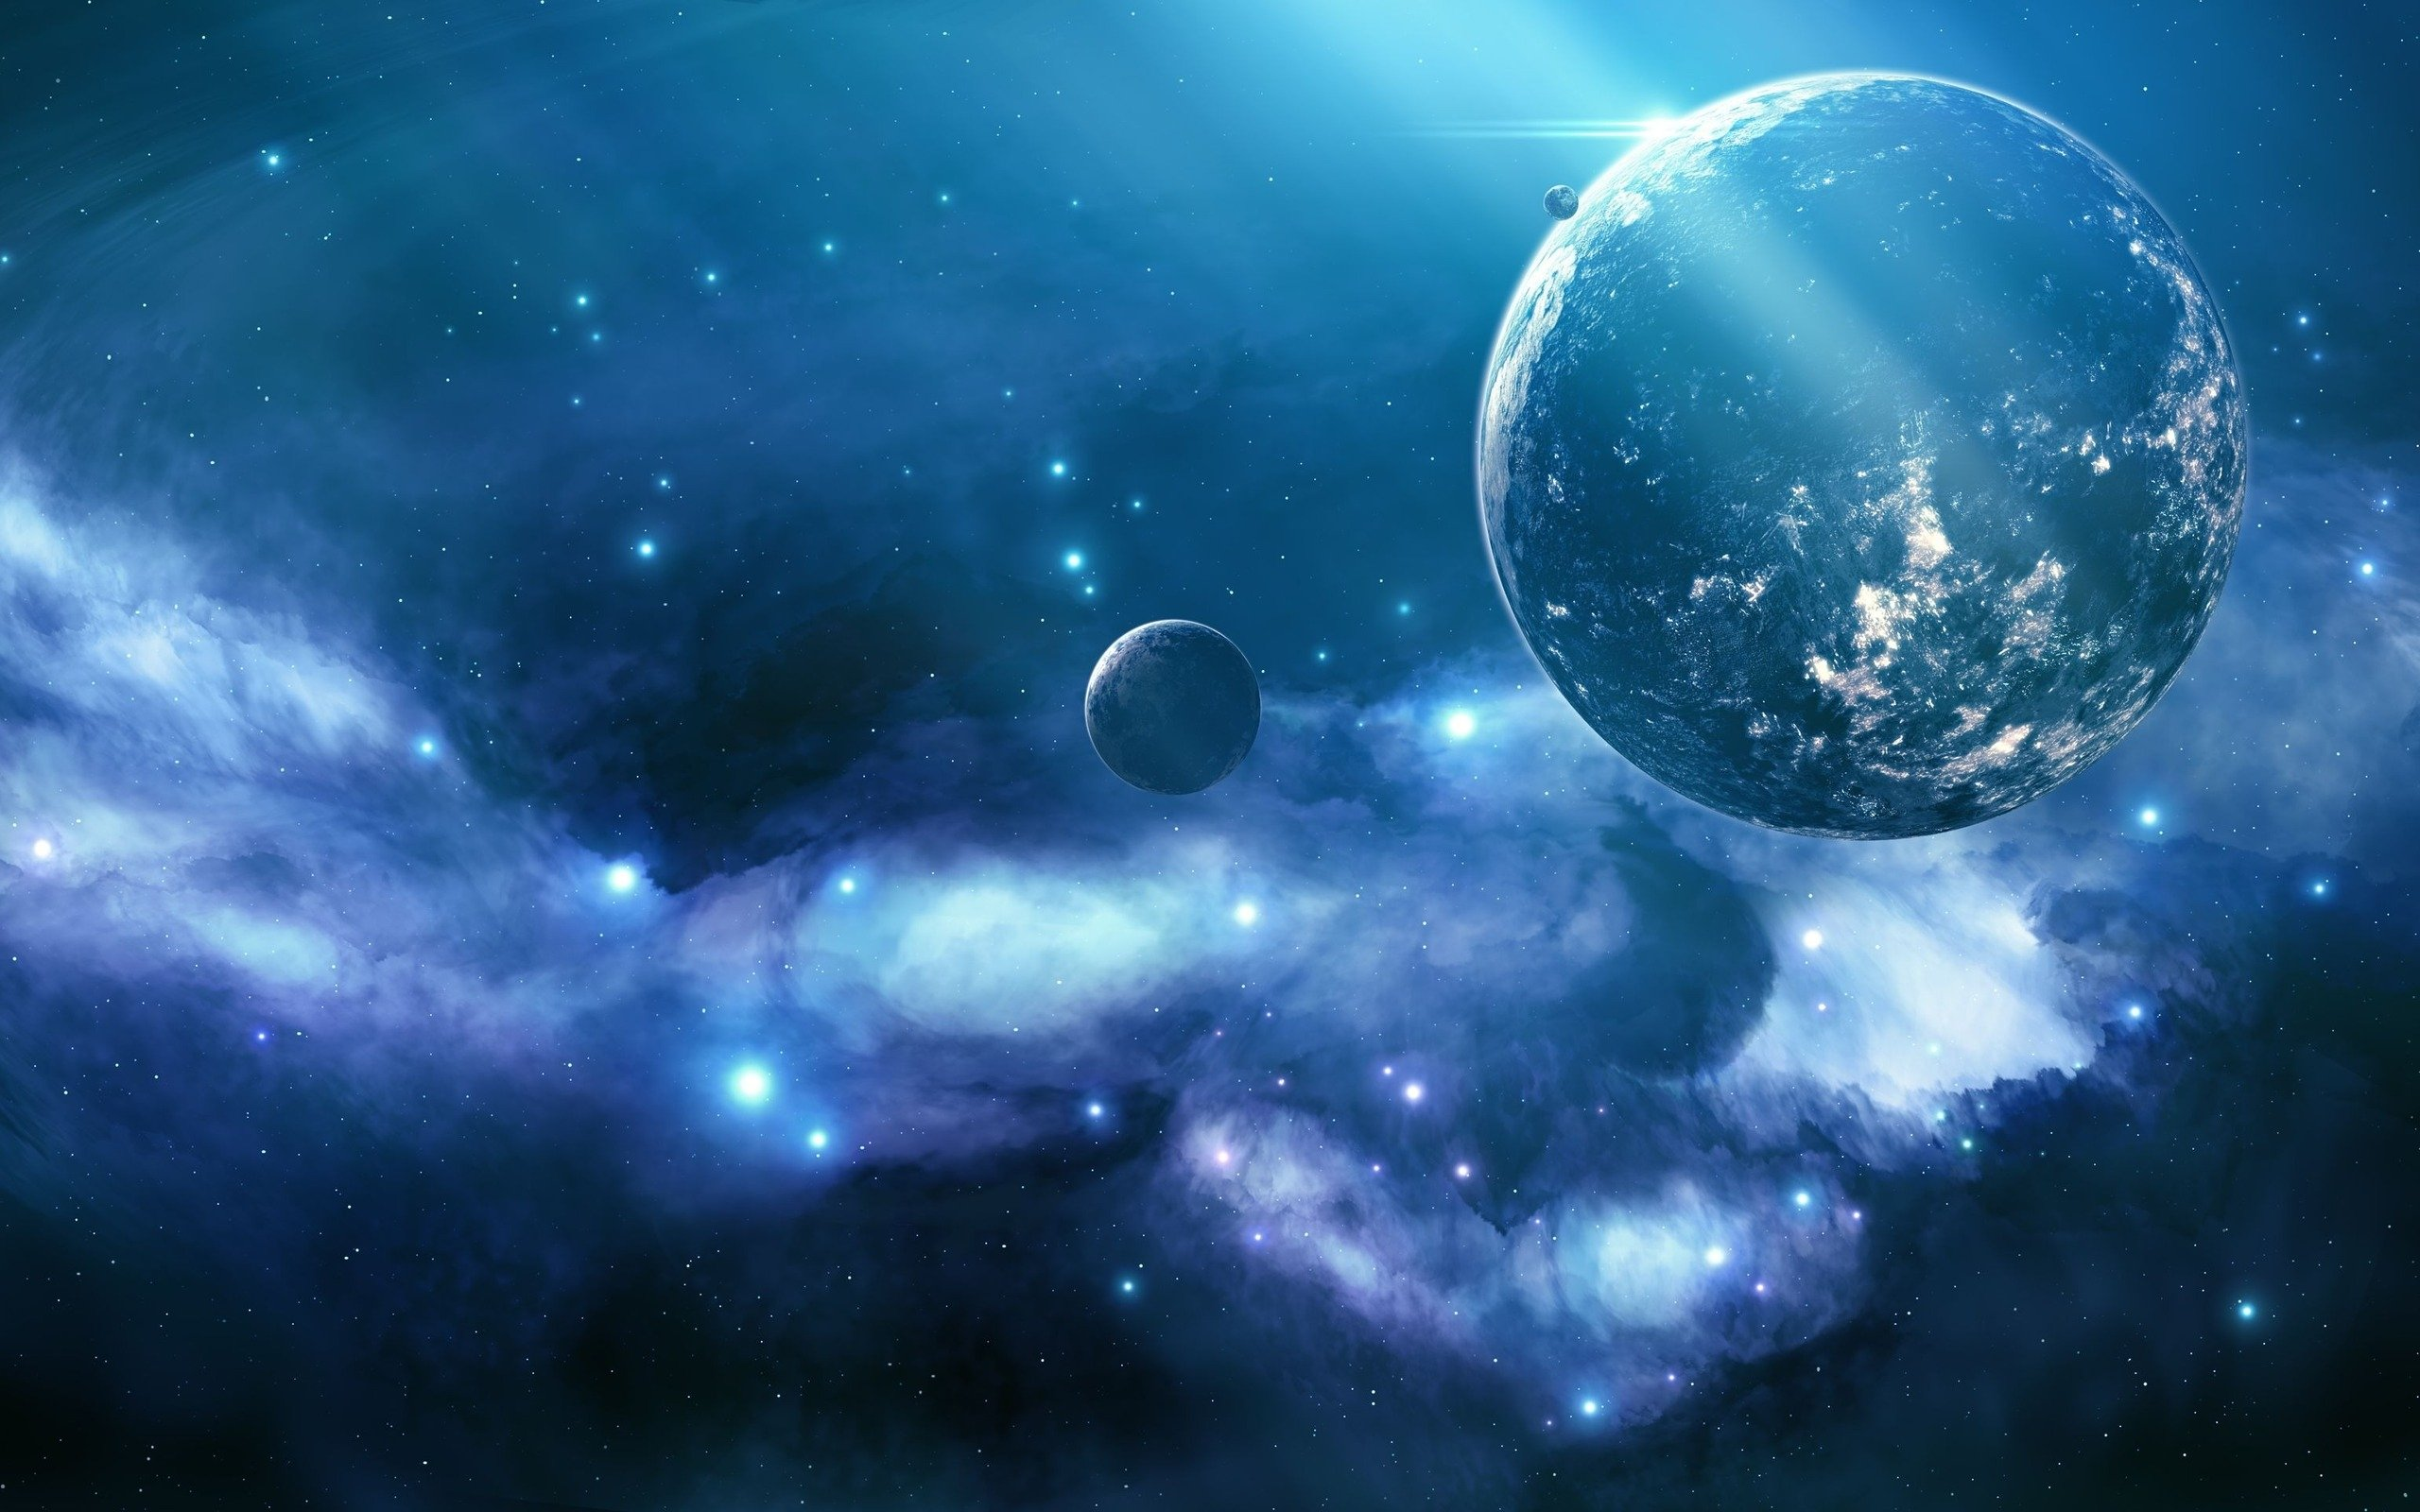 universe backgrounds 5 2560x1600